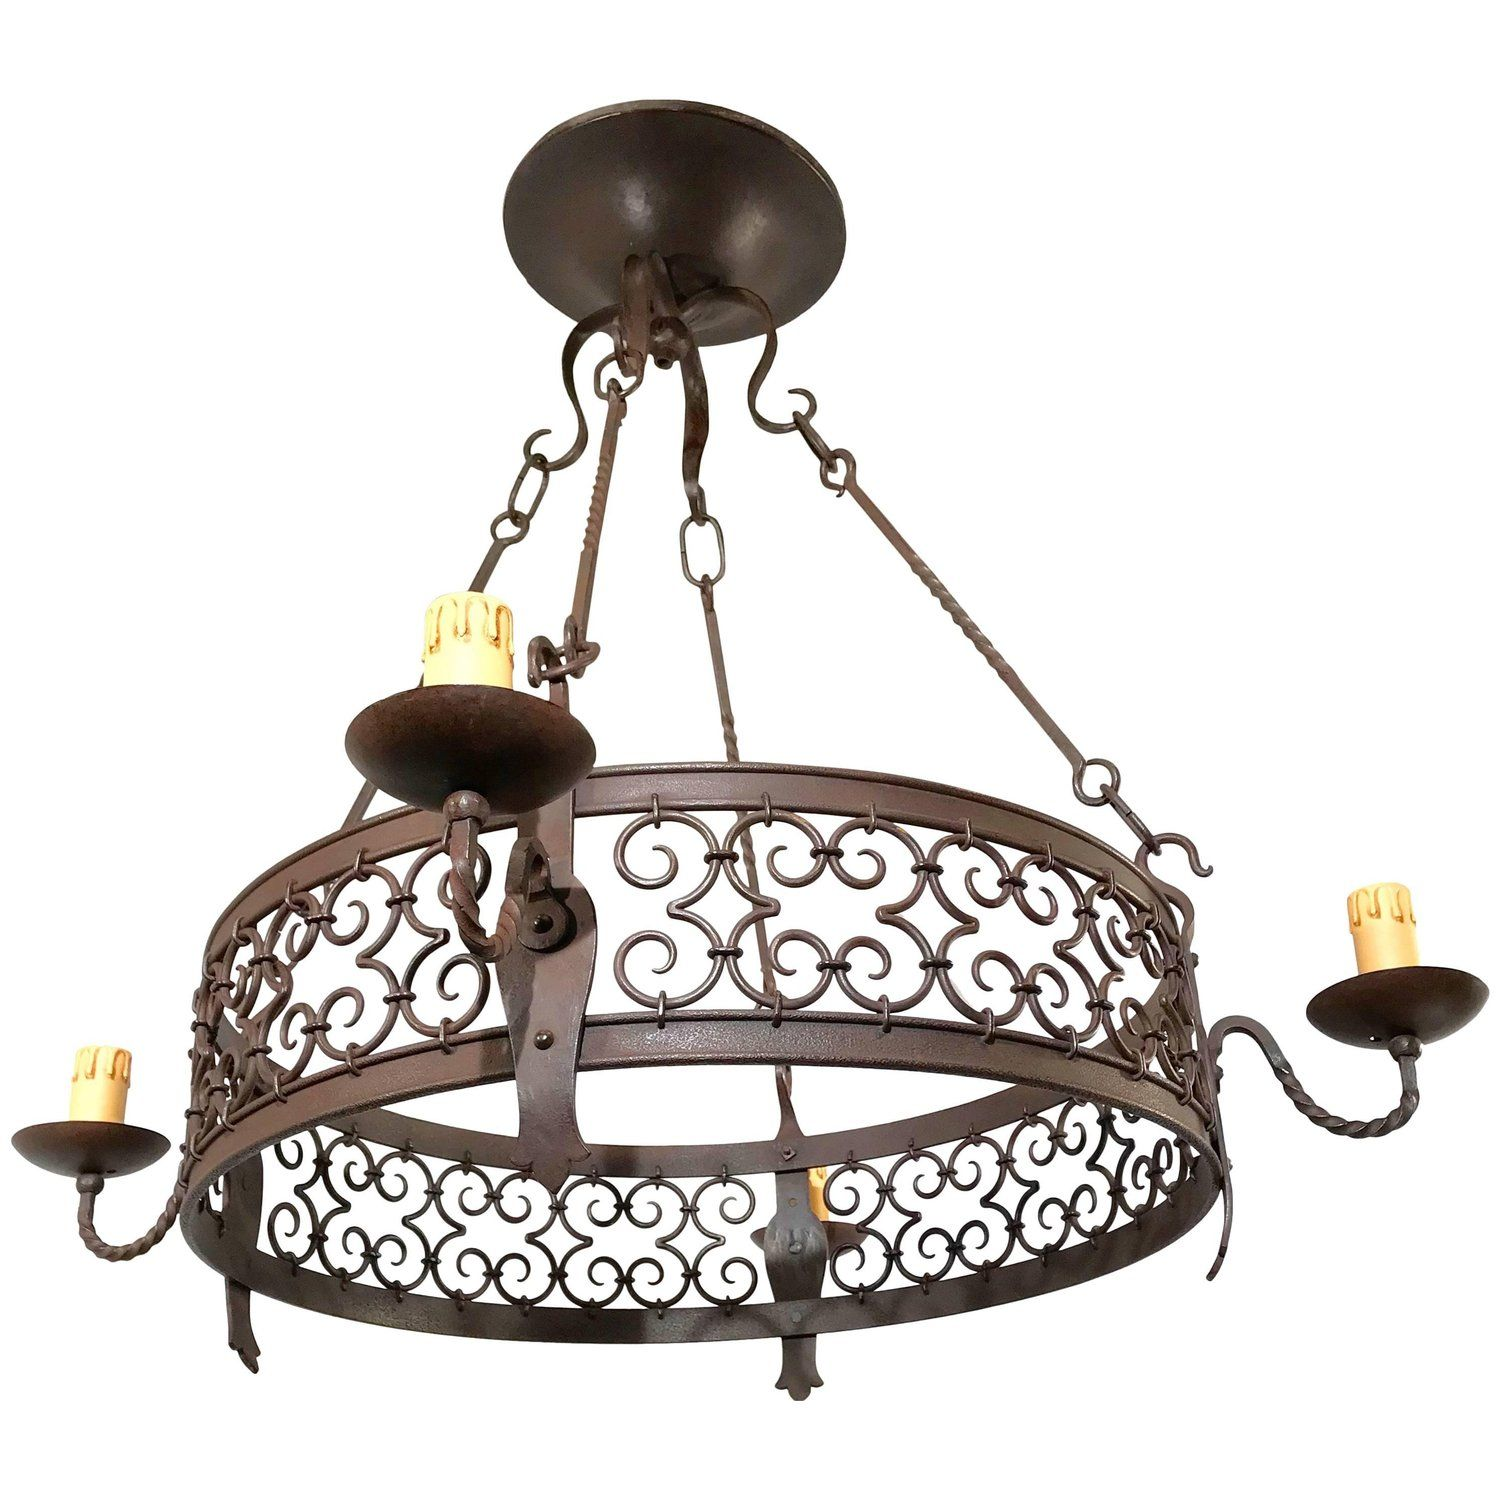 Large Arts And Crafts Forged In Fire Wrought Iron Chandelier Light Fixture Wrought Iron Chandeliers Iron Chandeliers Pendant Light Fixtures